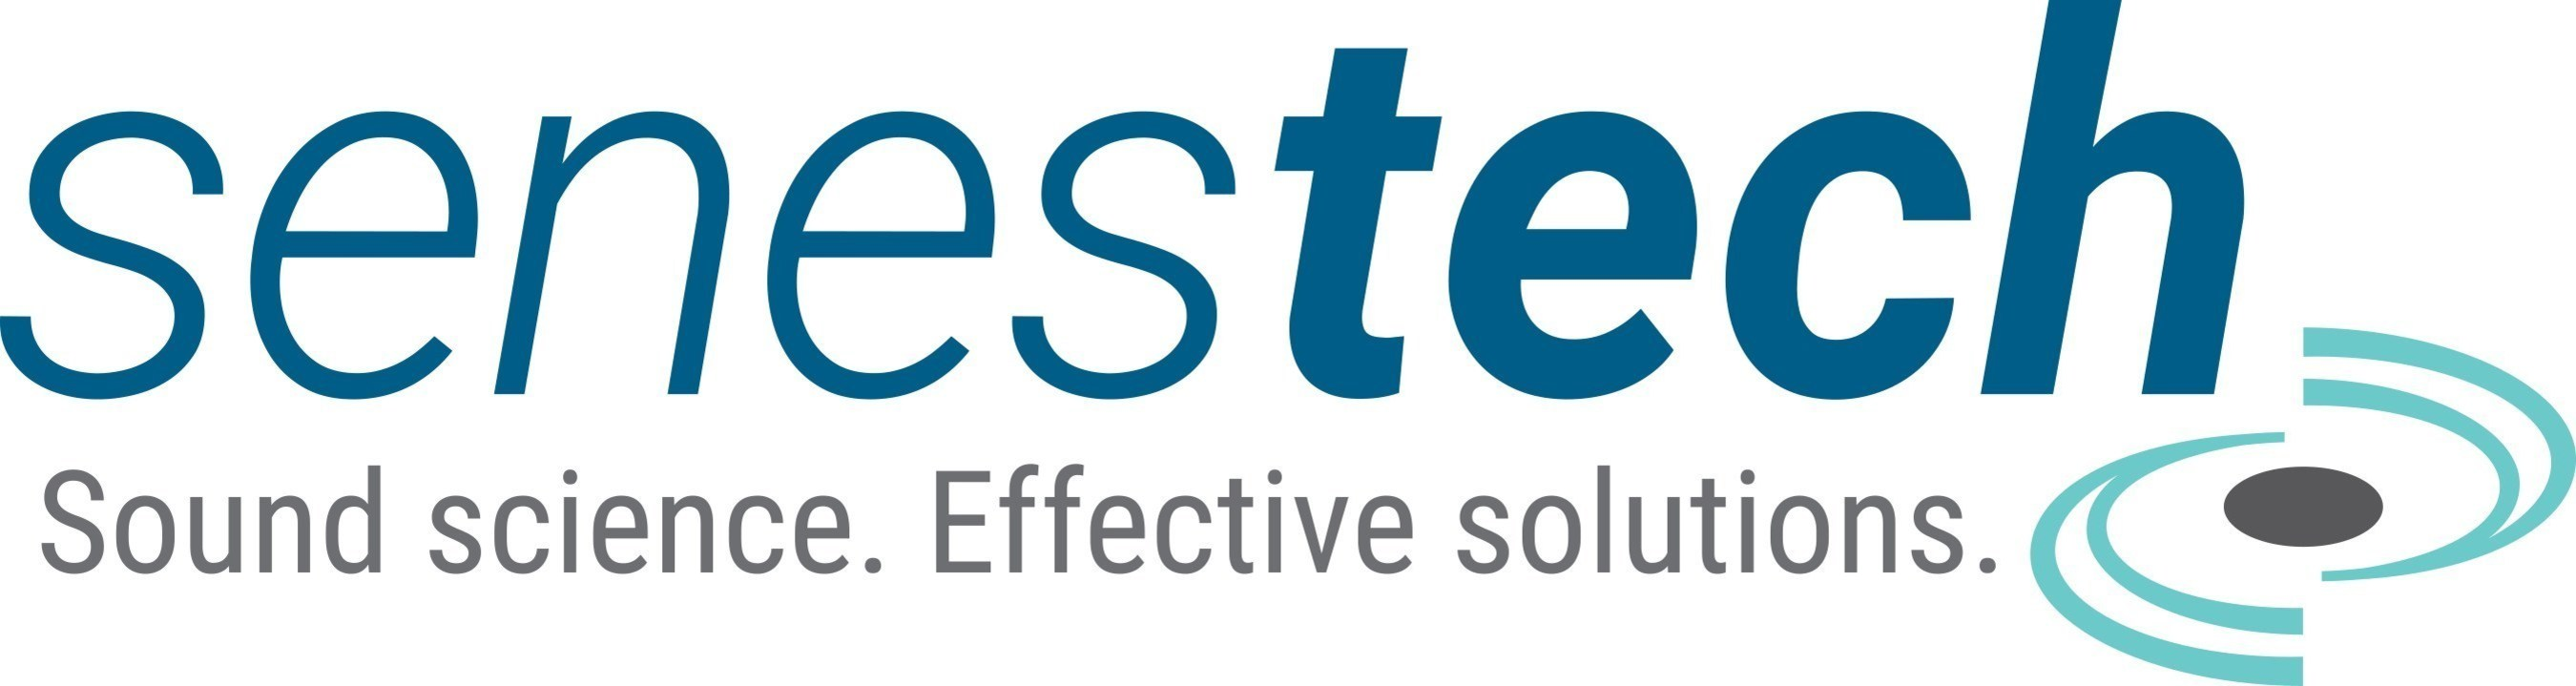 SenesTech, Inc. is a developer of proprietary technologies for managing animal pest populations through fertility control.